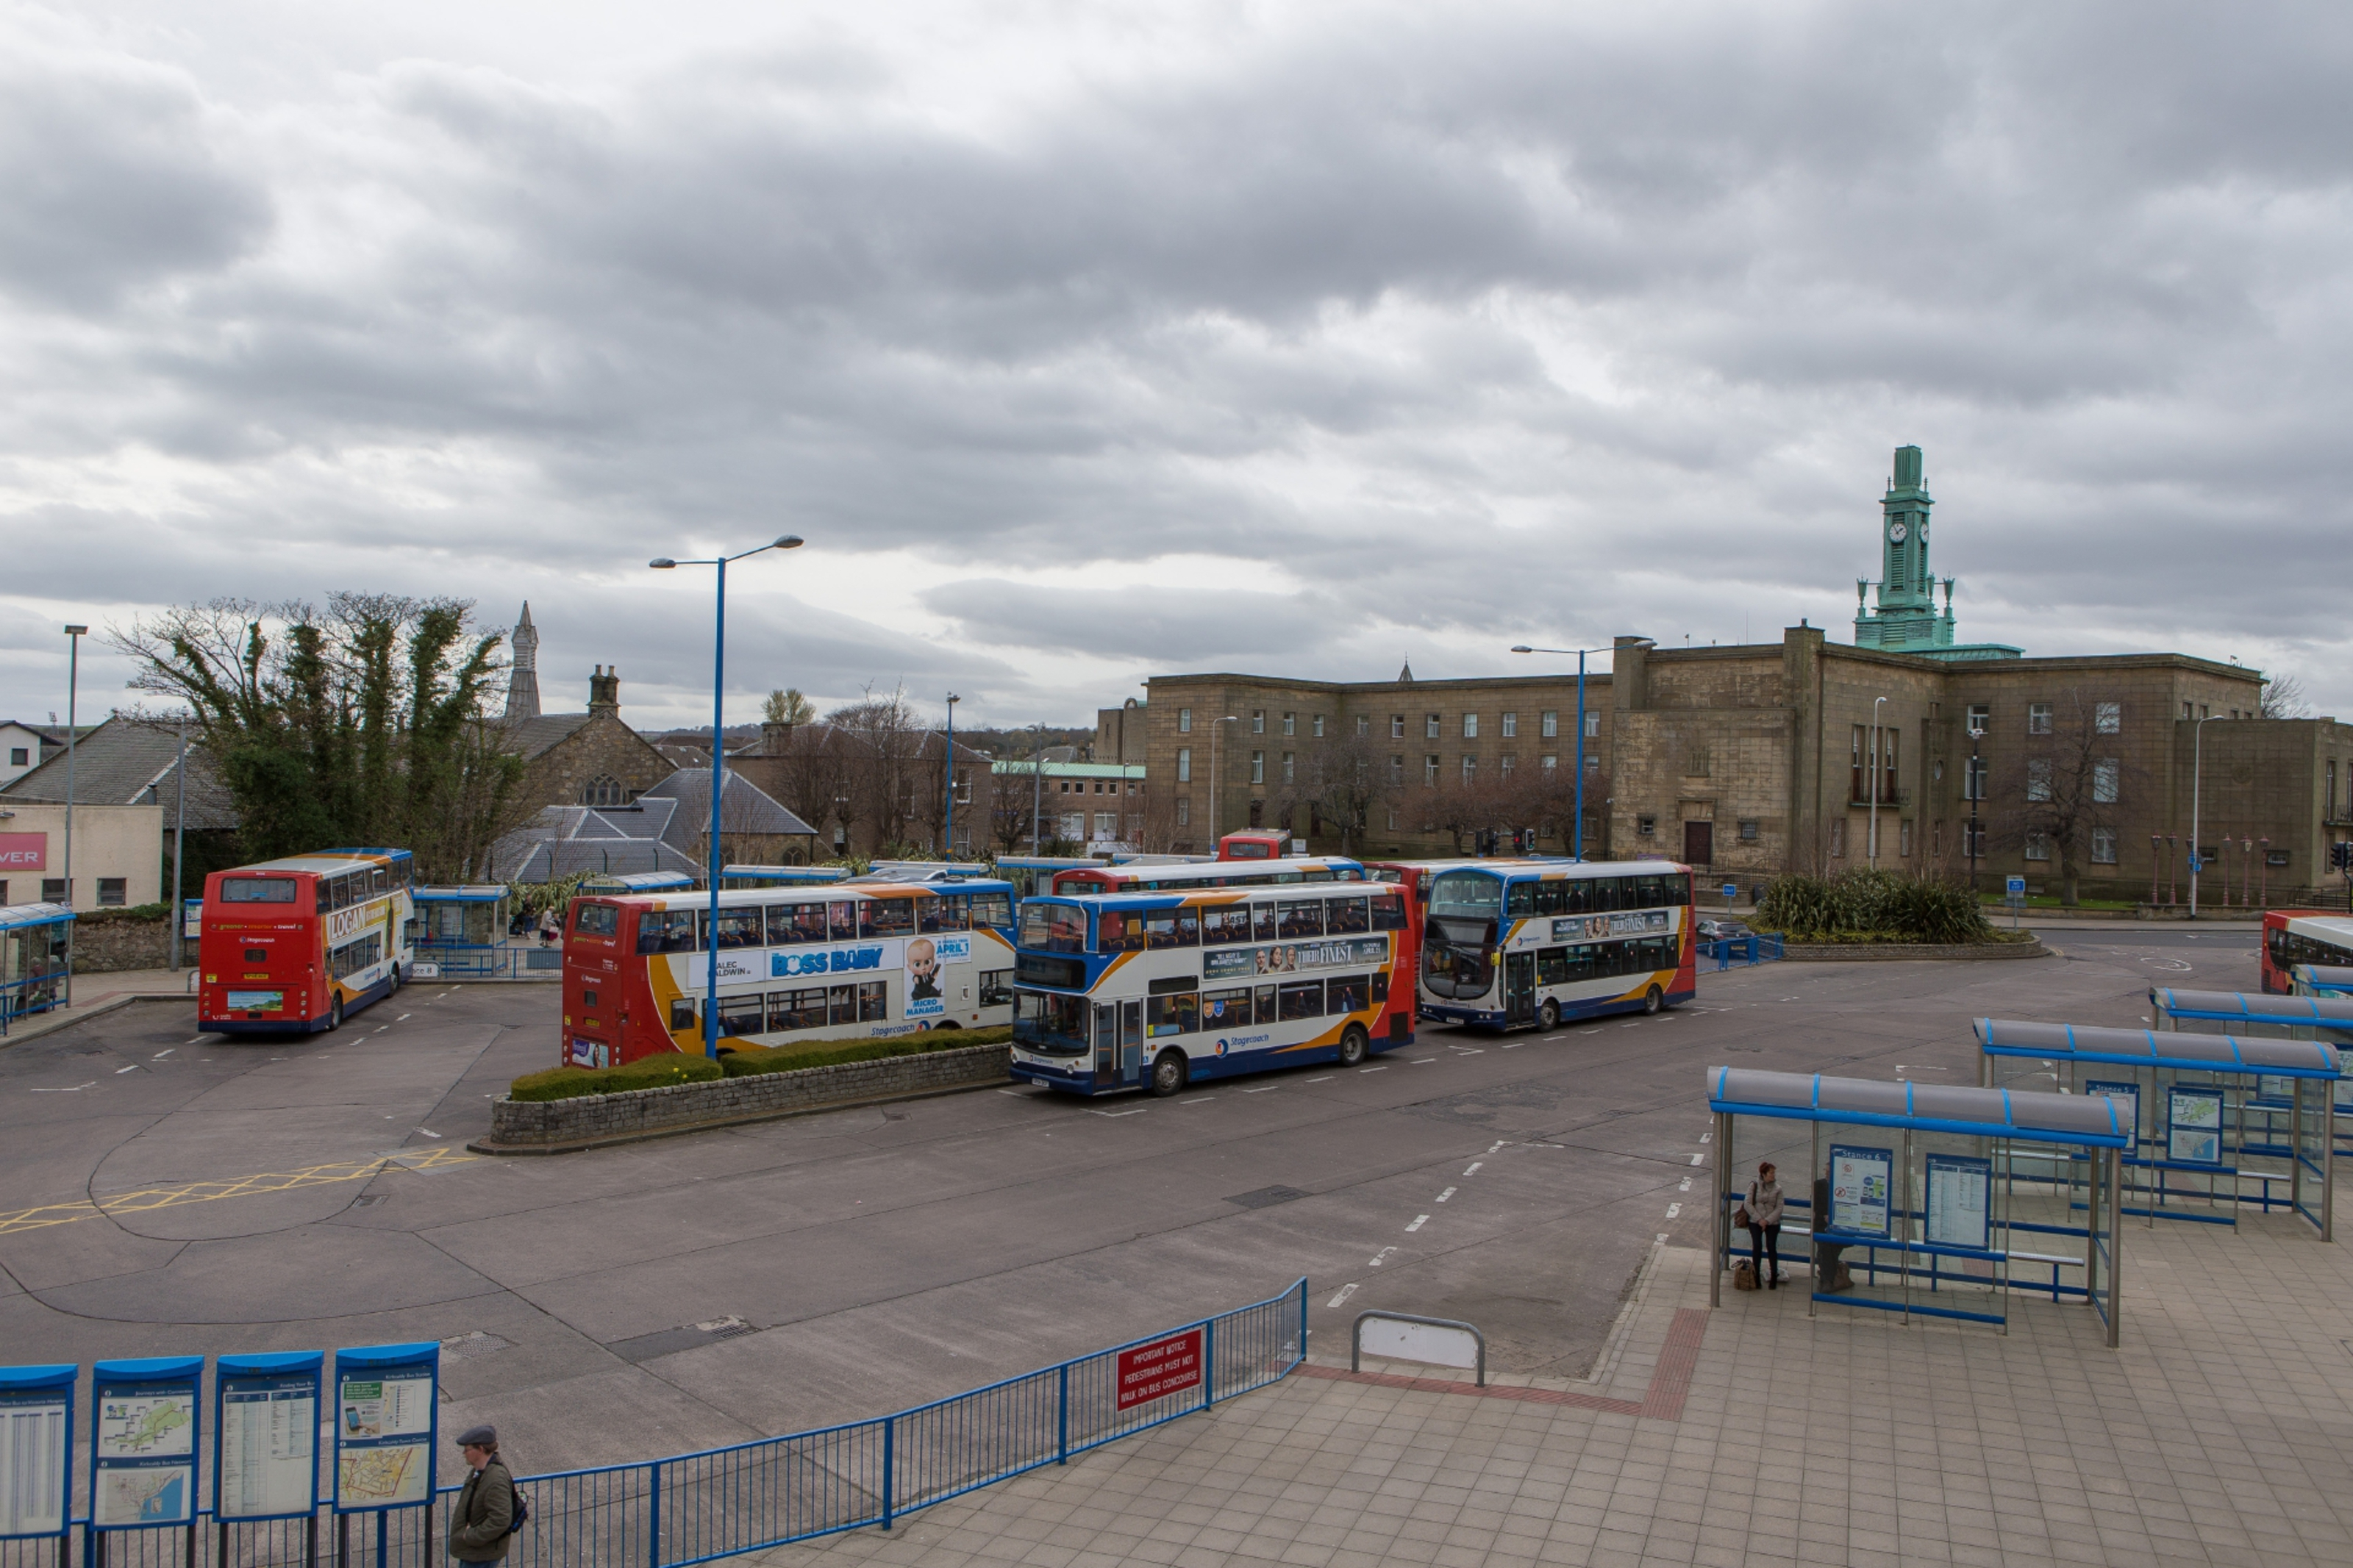 The assault is alleged to have occurred near Kirkcaldy Bus Station on Saturday evening